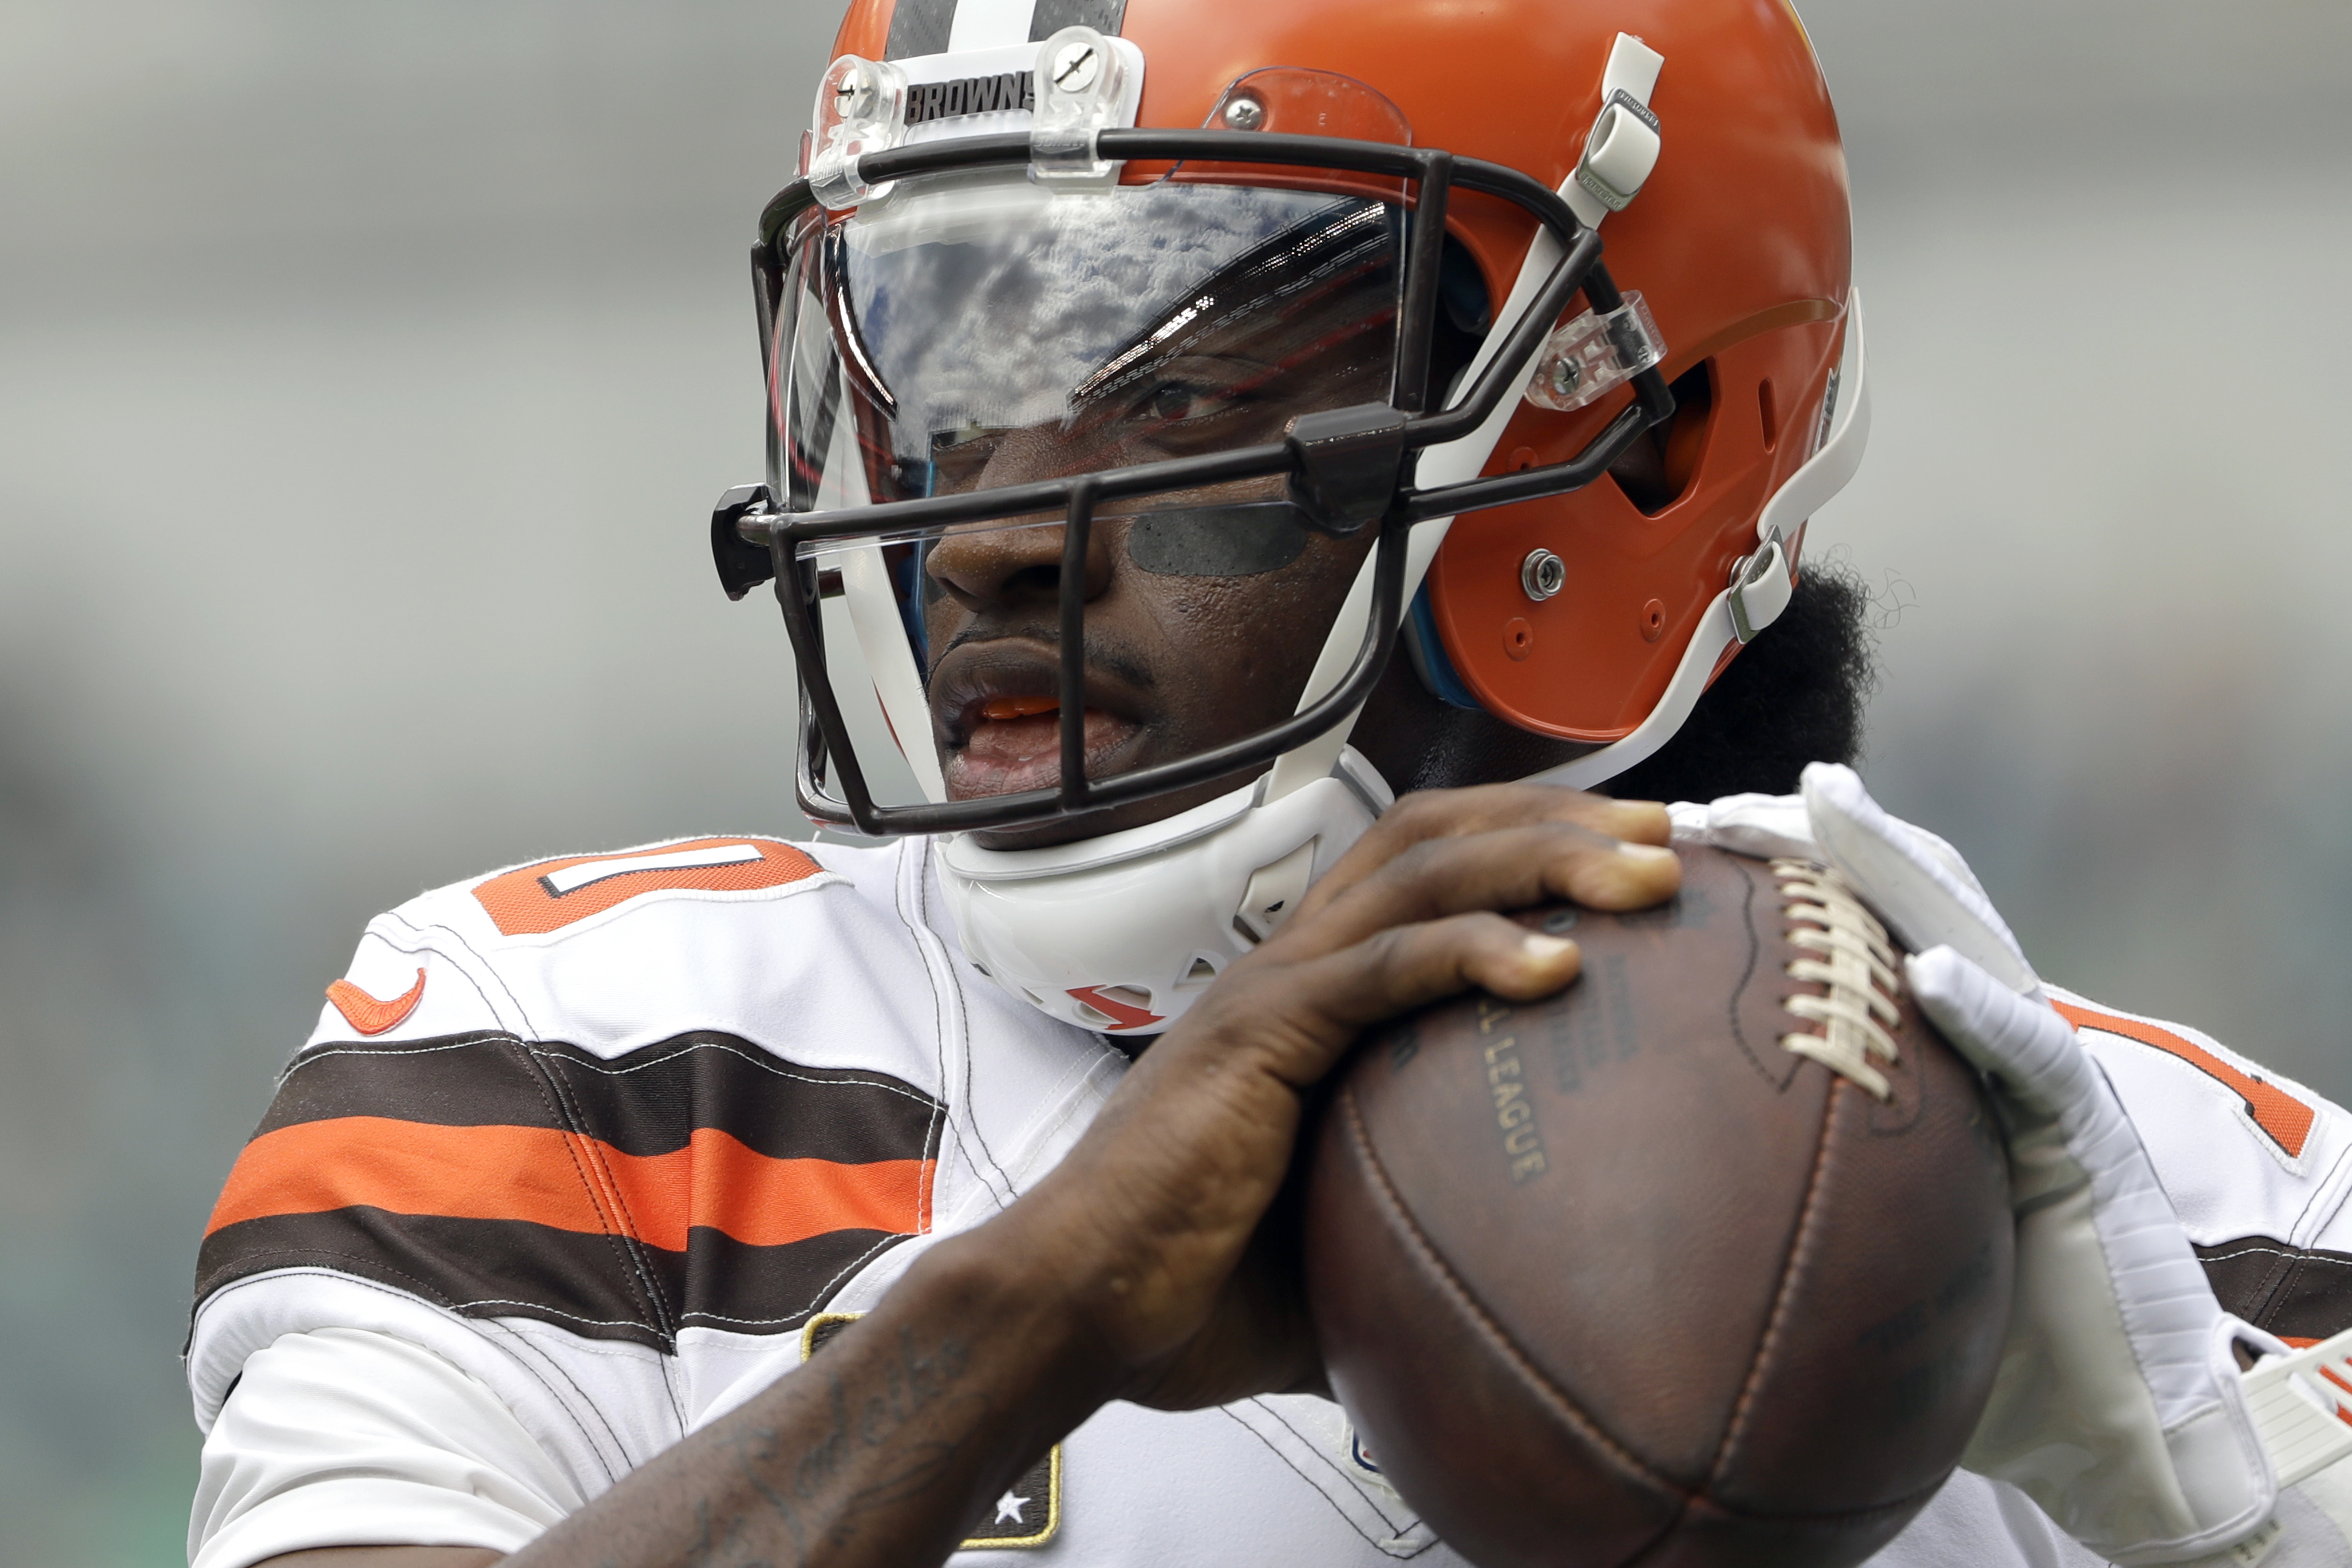 FILE - In this Sept. 11, 2016, file photo, Cleveland Browns' Robert Griffin III warms up before an NFL football game against the Philadelphia Eagles, in Philadelphia. Griffin III is back behind center for the Browns. Griffin will make his second start thi